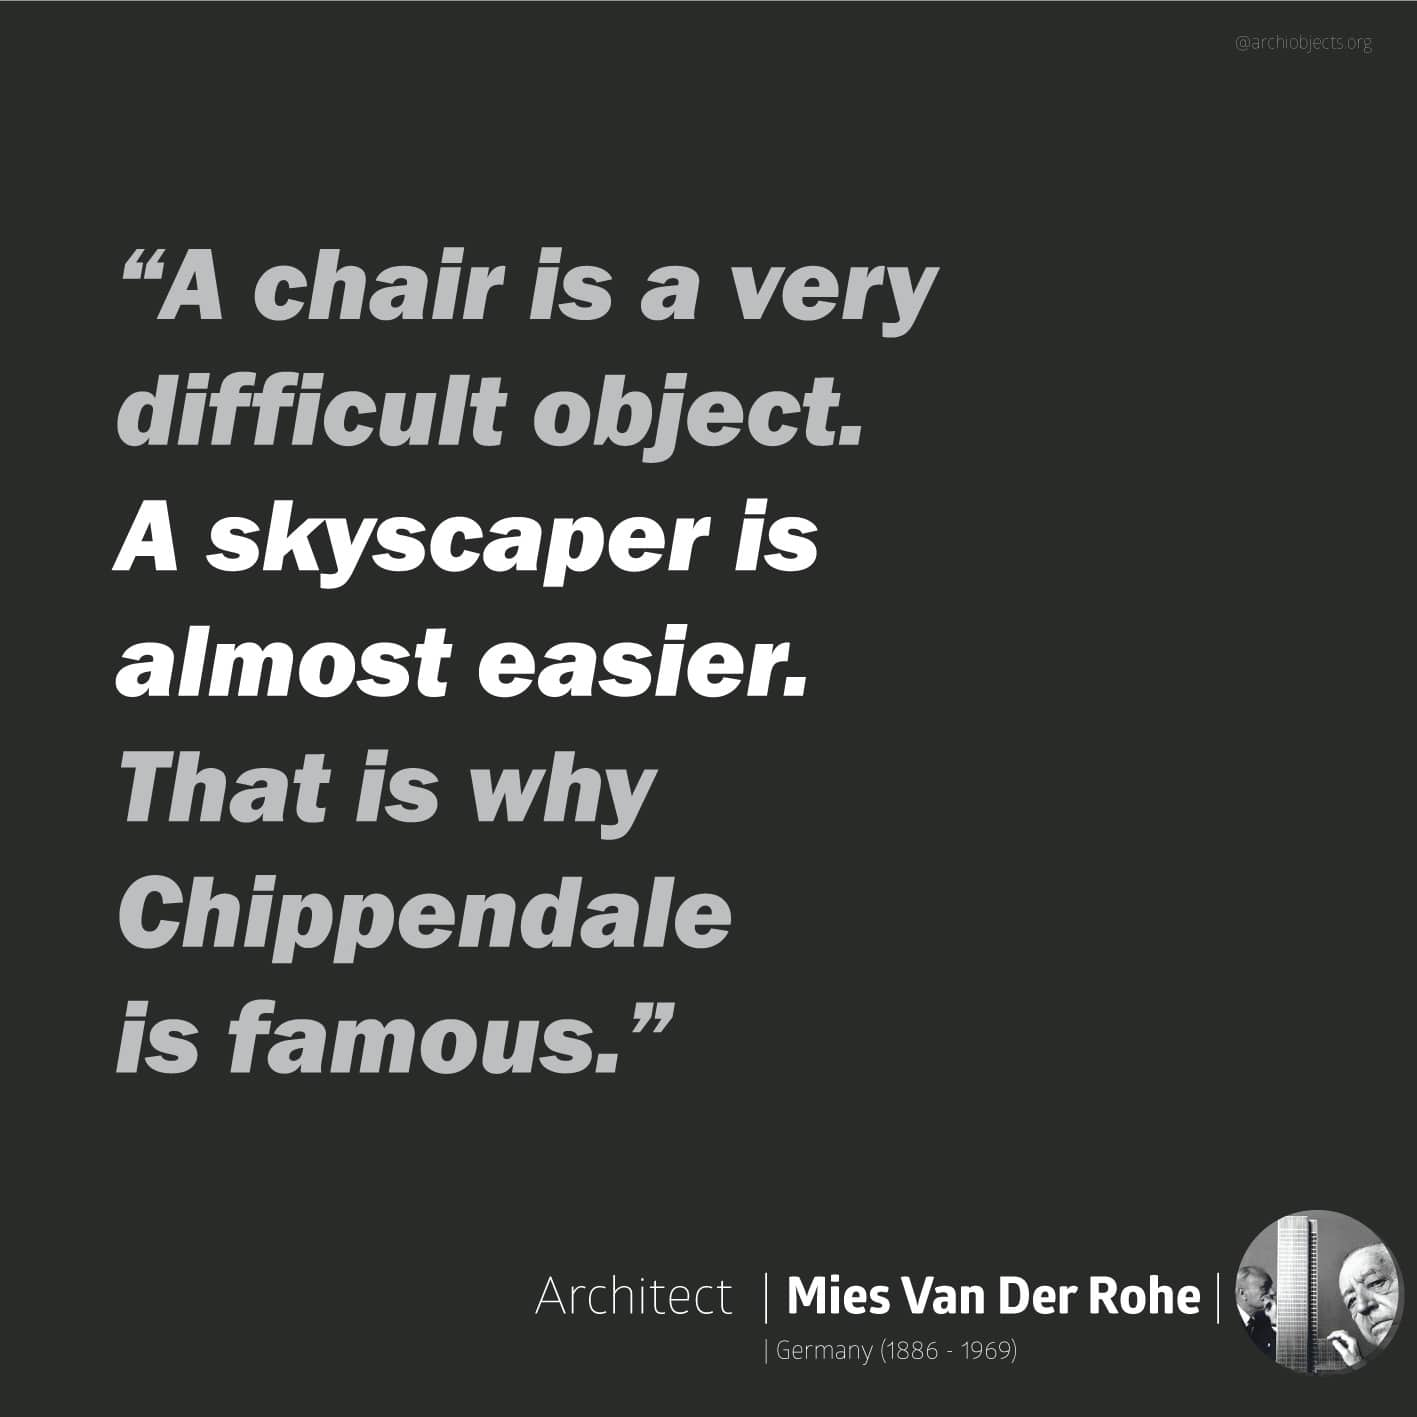 mies quote Architectural Quotes - Worth spreading Architects' voice